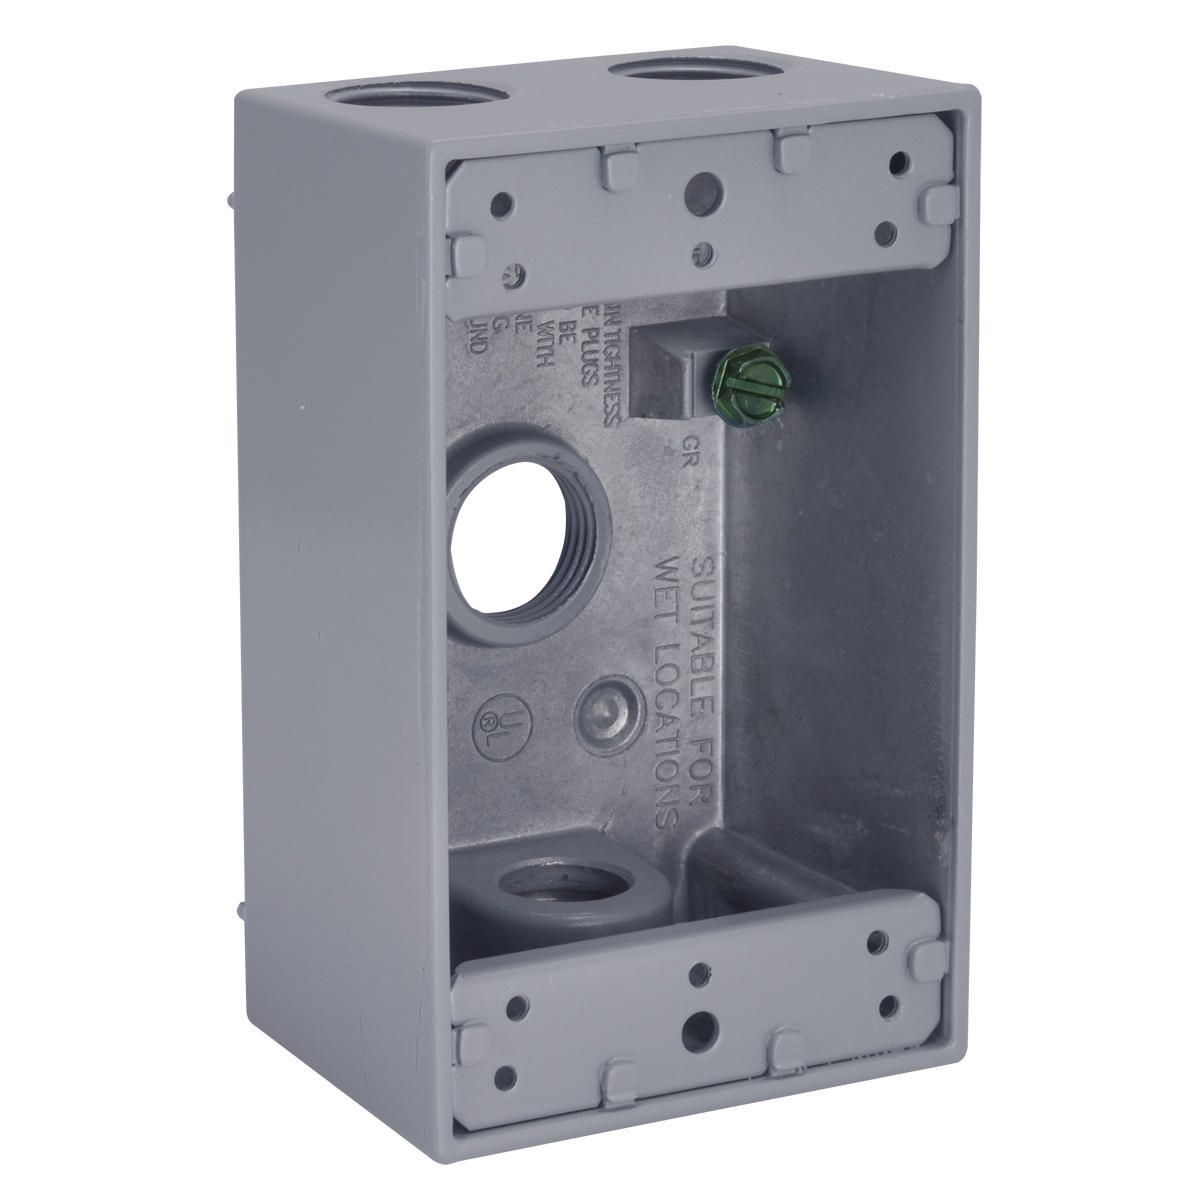 1G WP BOX (4) 1/2 IN. OUTLETS - GRAY